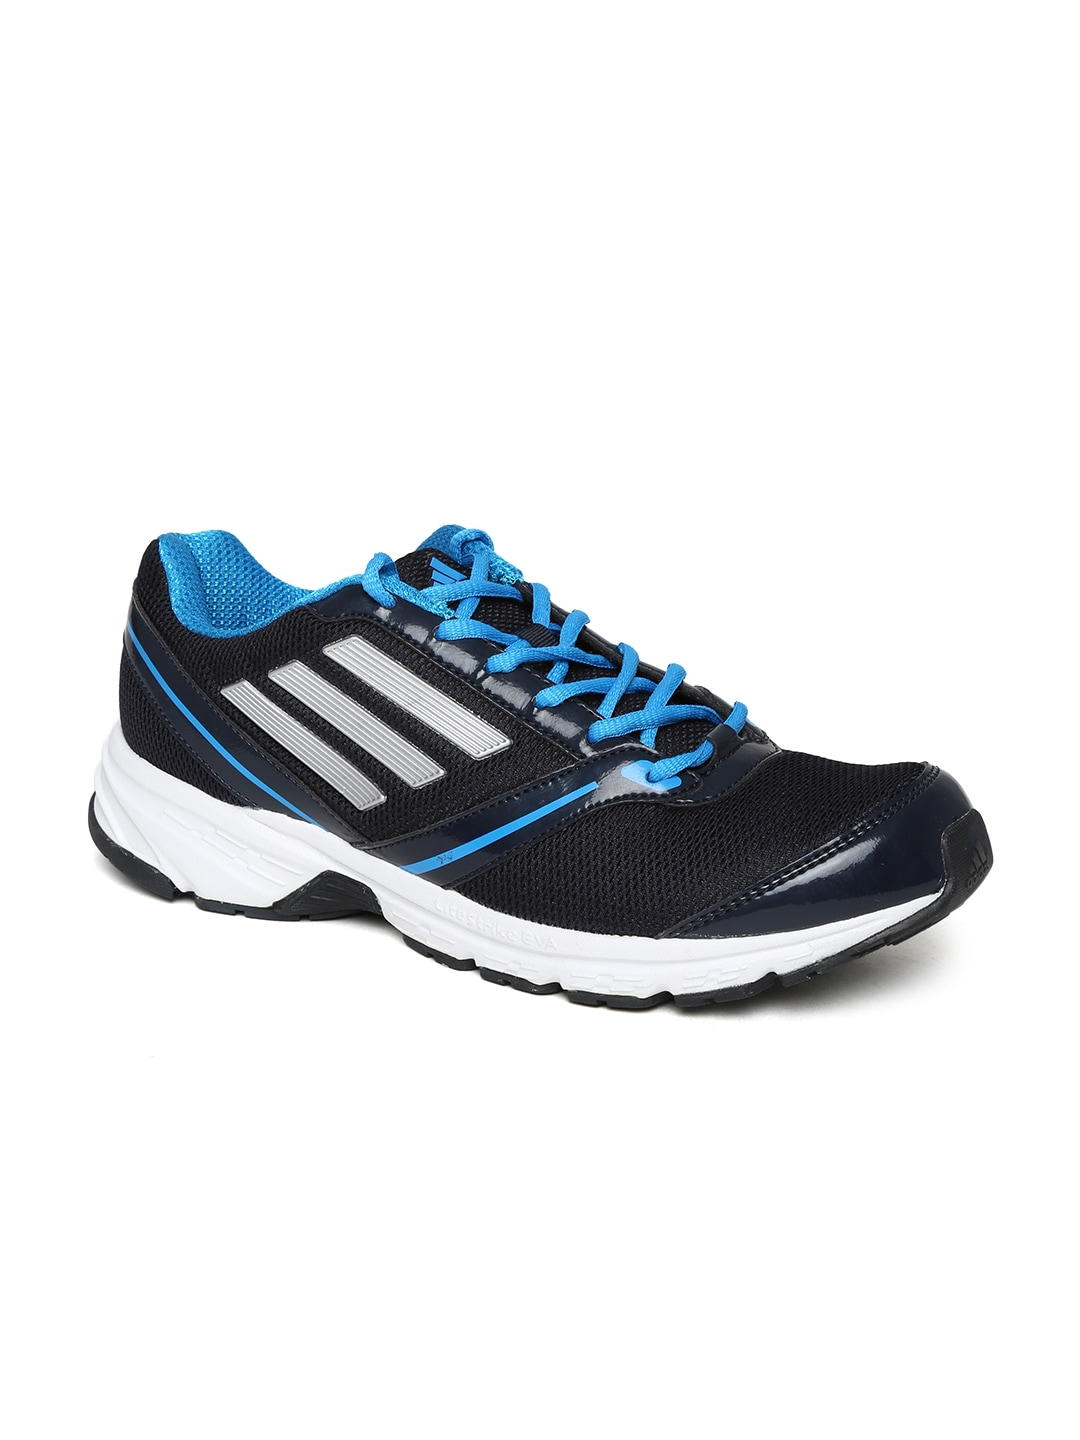 adidas sport shoes price